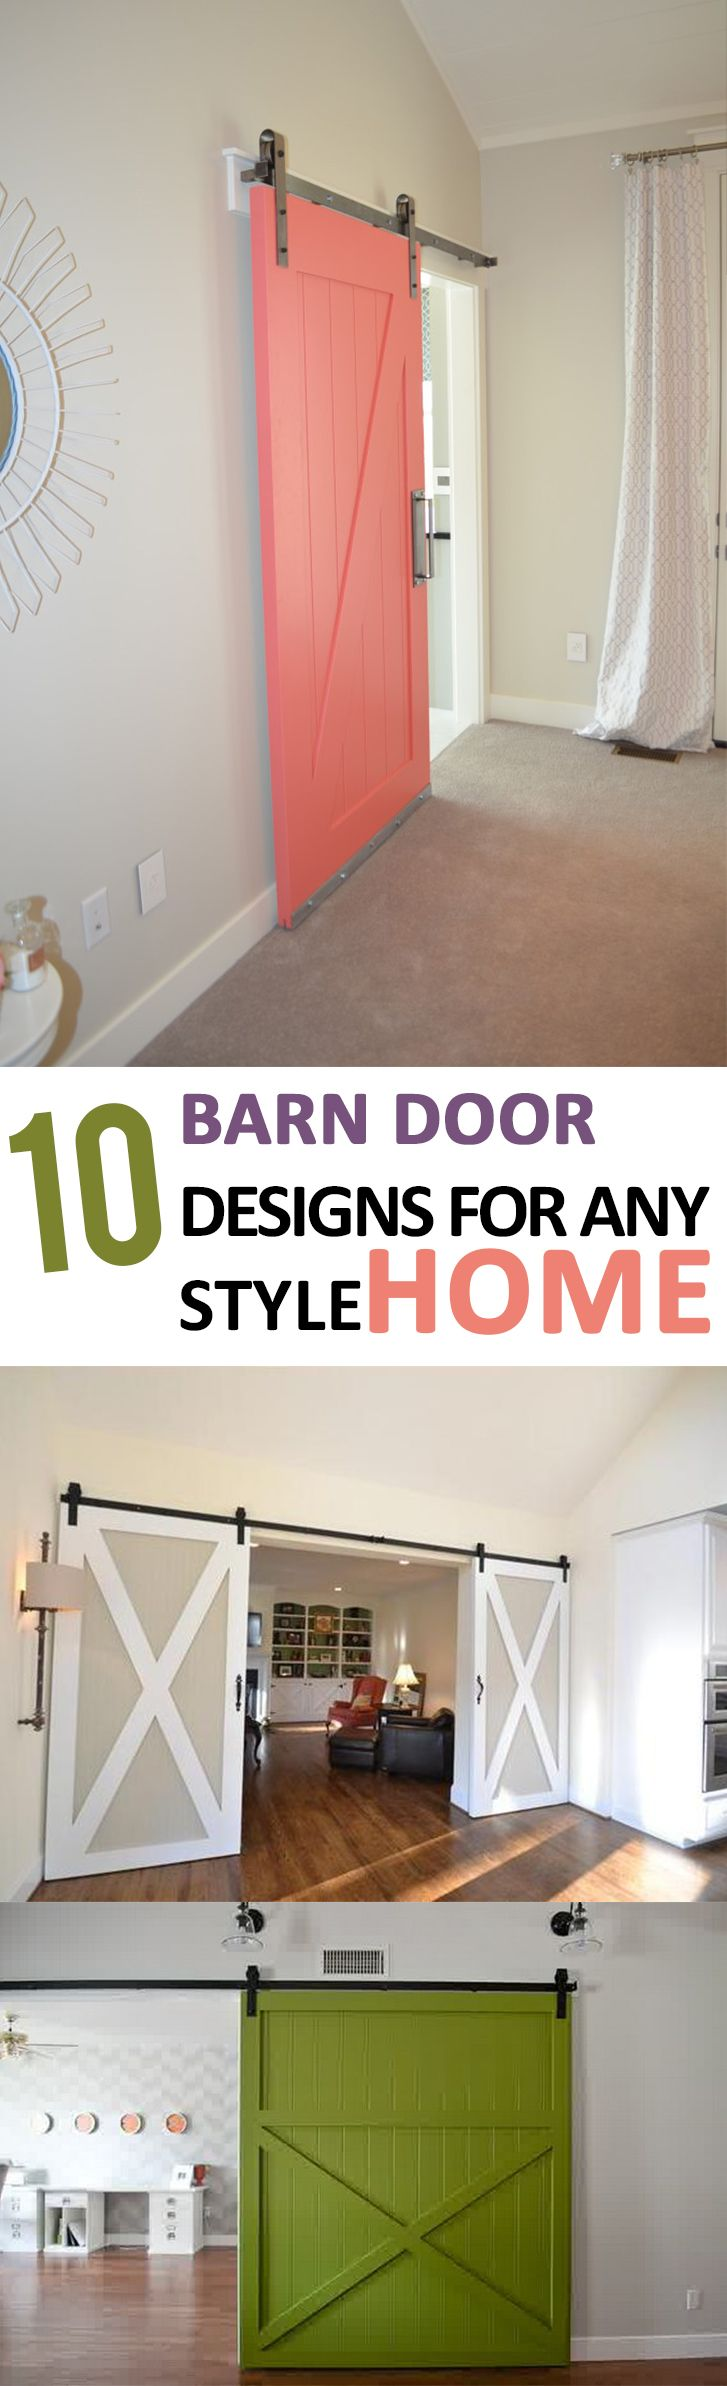 Bring a stunning barn door into your home!